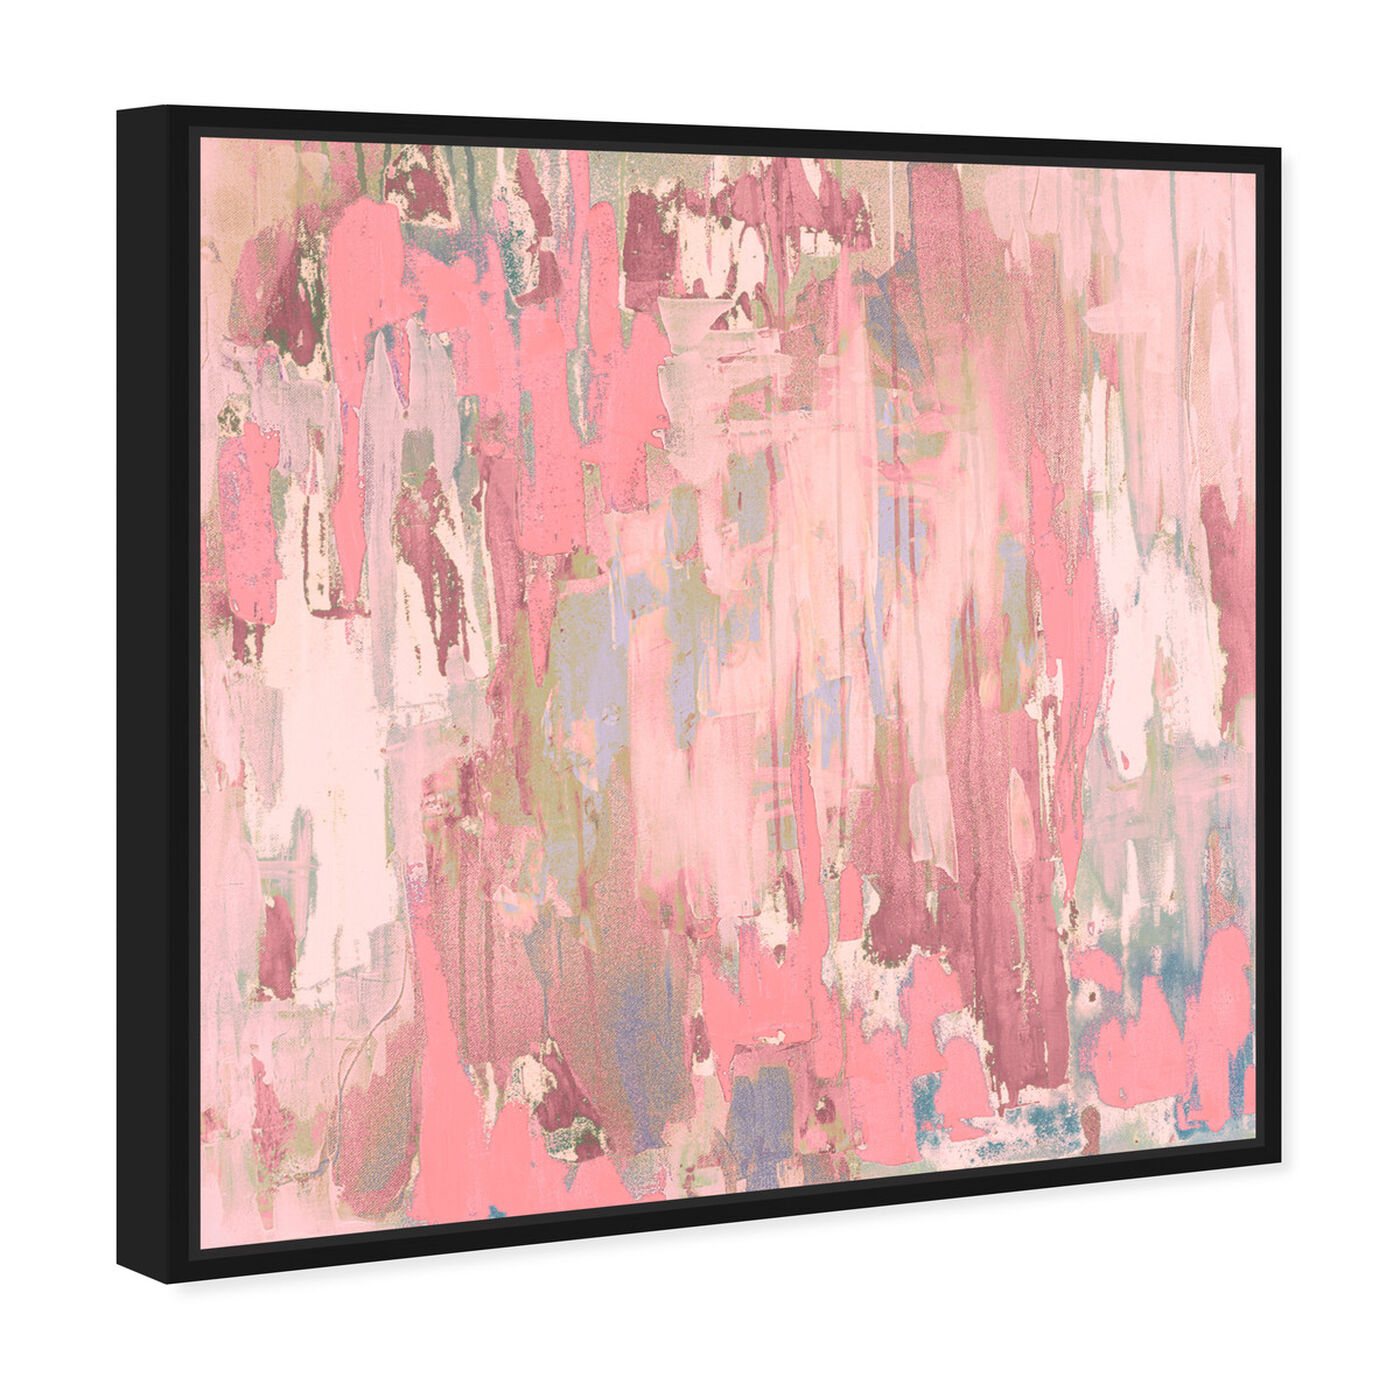 Angled view of Marissa Anderson - Blush Swan Lake featuring abstract and paint art.